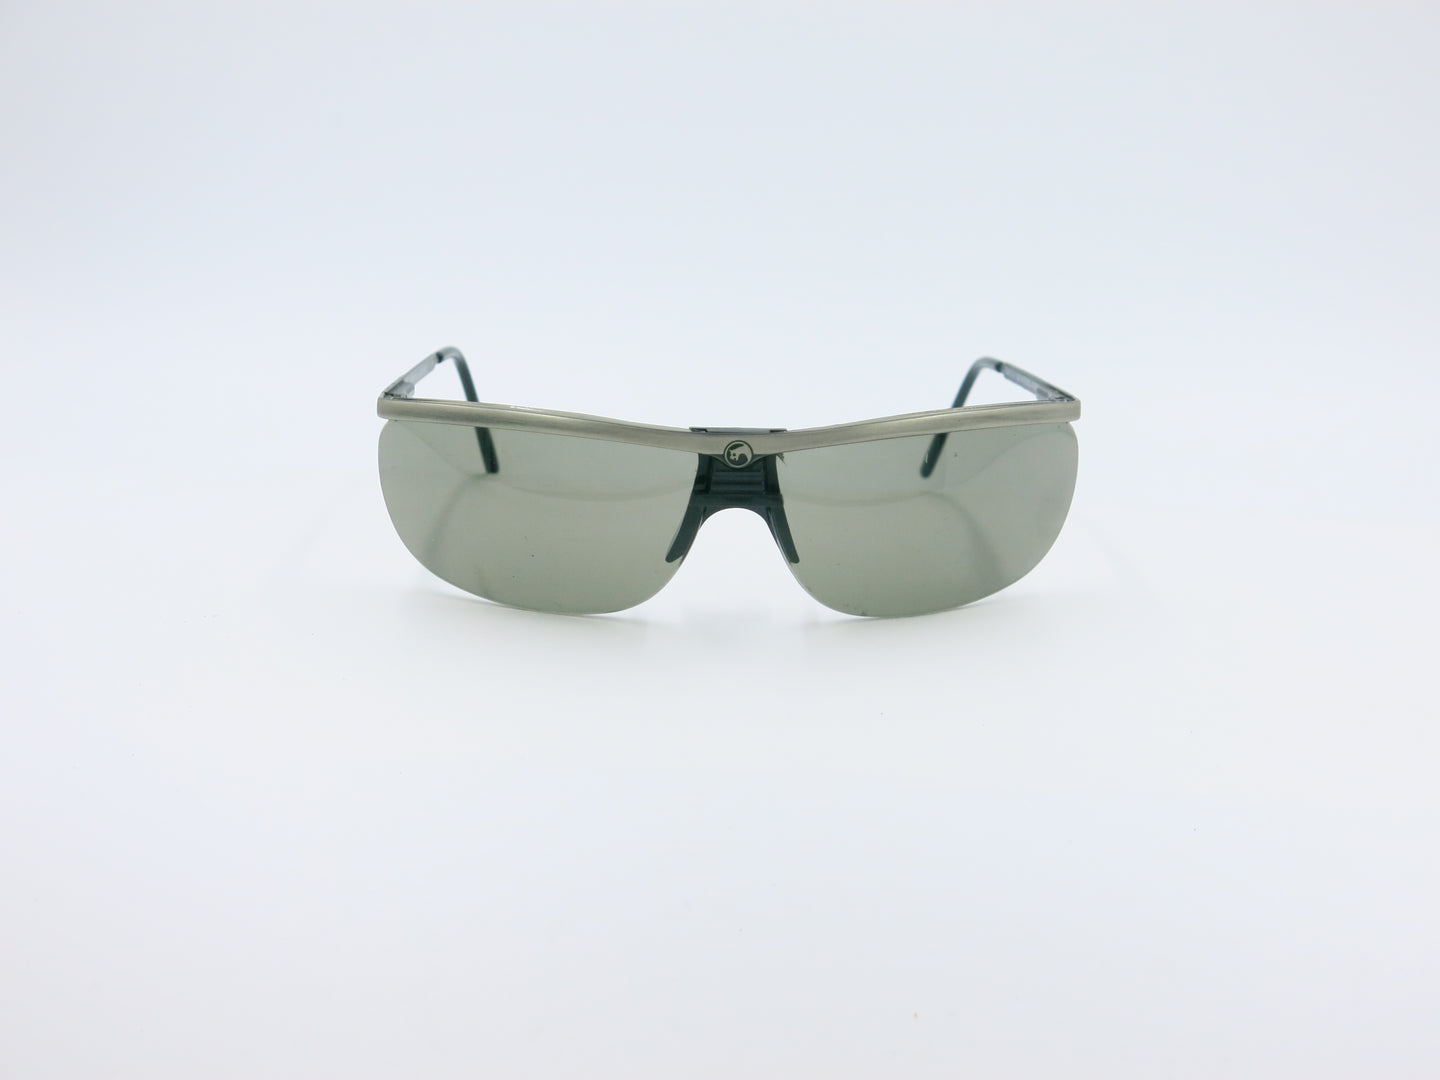 Gargoyles Sunglasses Legends II Pewter | Sunglasses by Gargoyles | Friedman & Sons